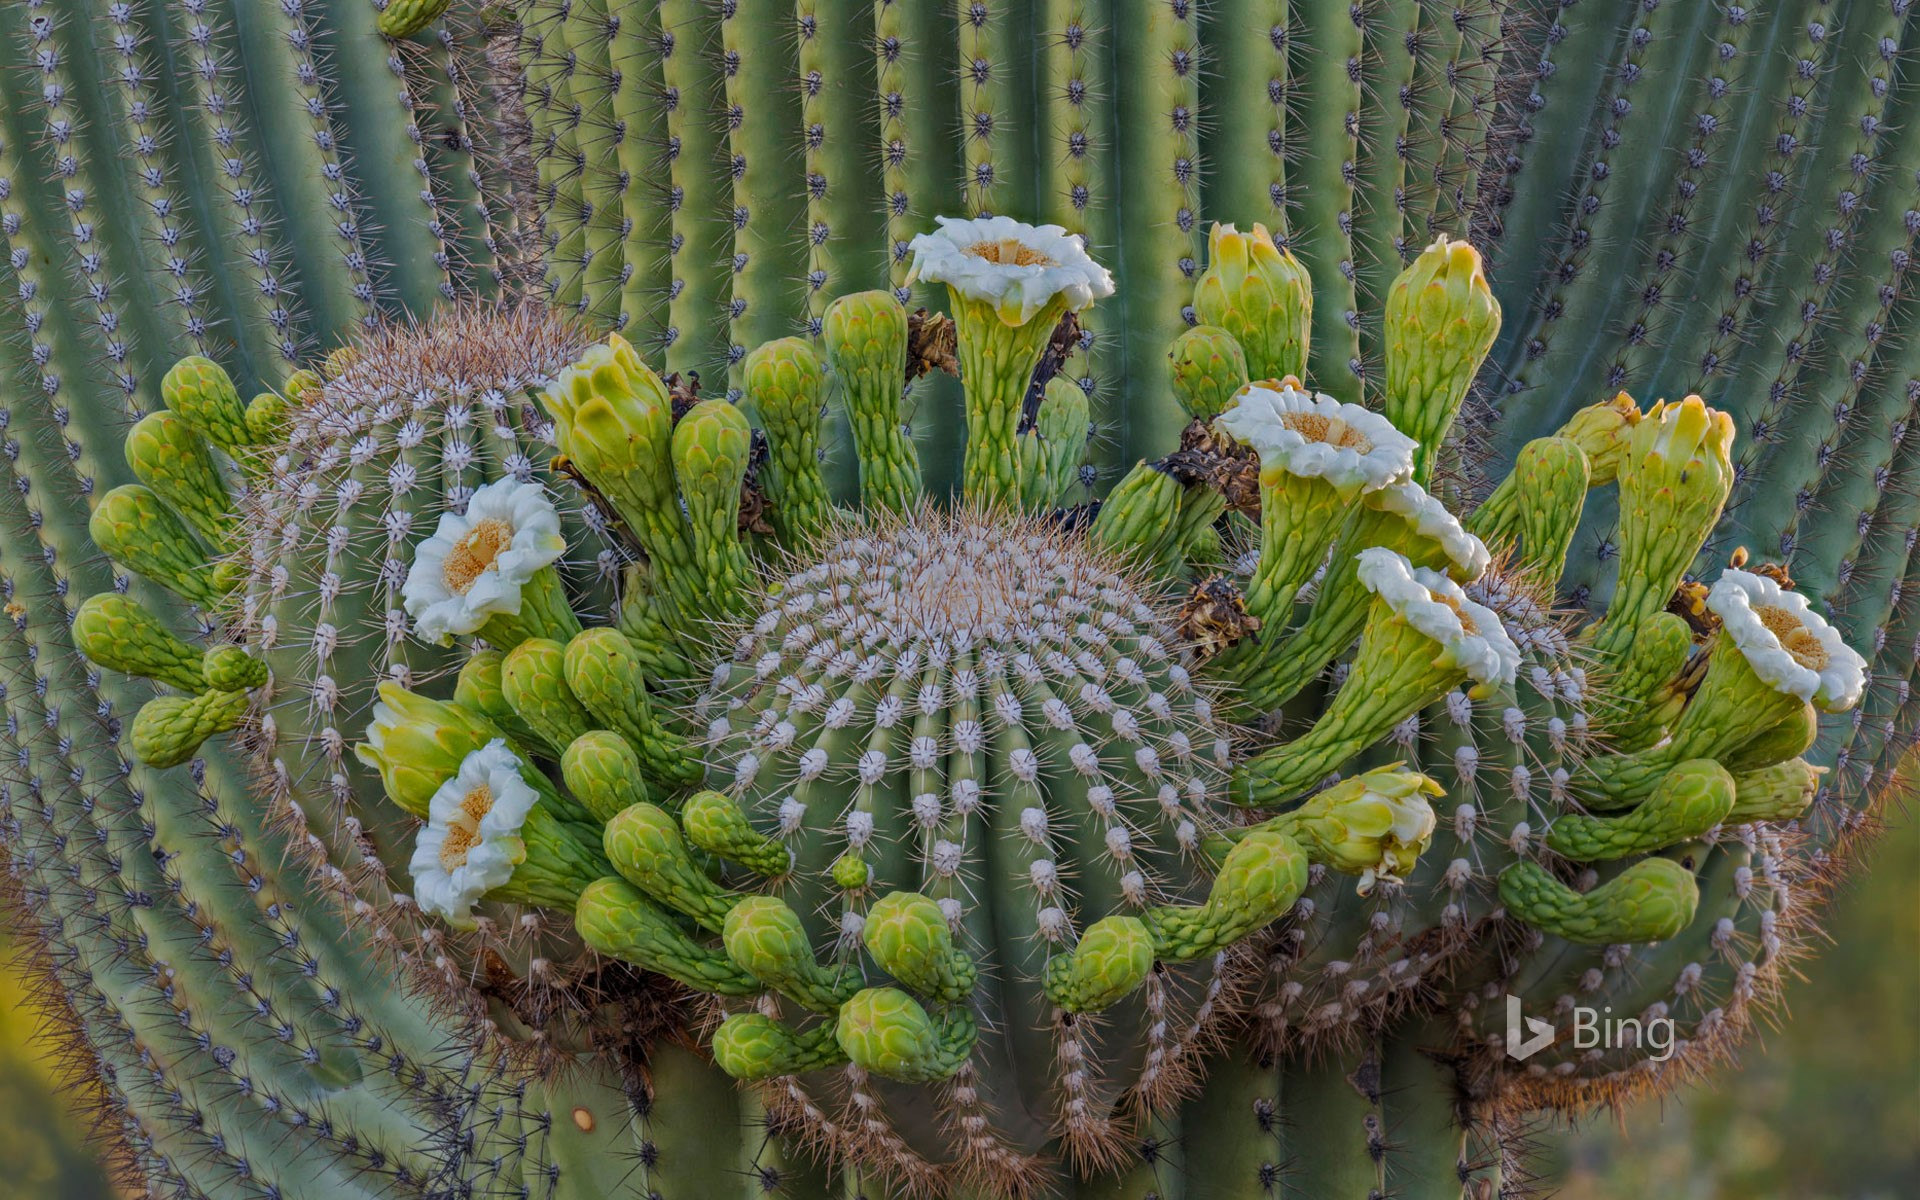 Saguaro cactus flowers, Coronado National Forest, Arizona, USA